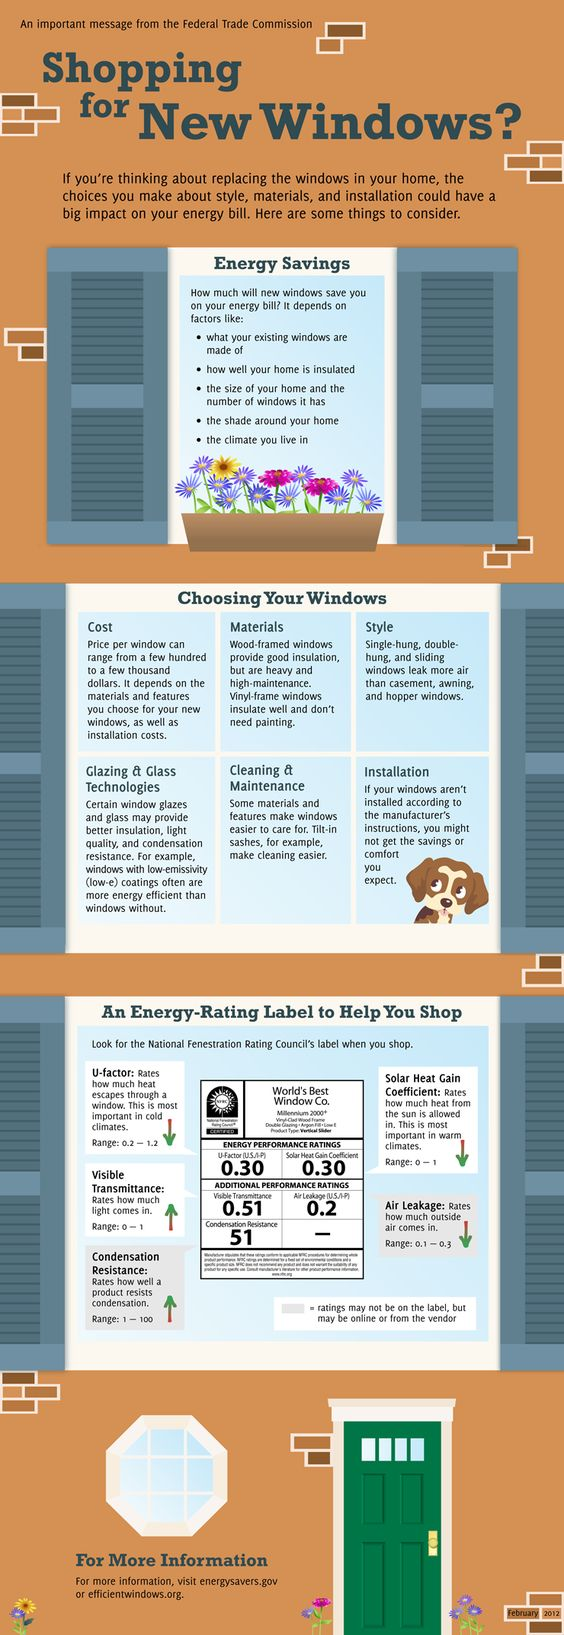 Need new windows? Be informed! And thanks to the FTC for such a great infographic!